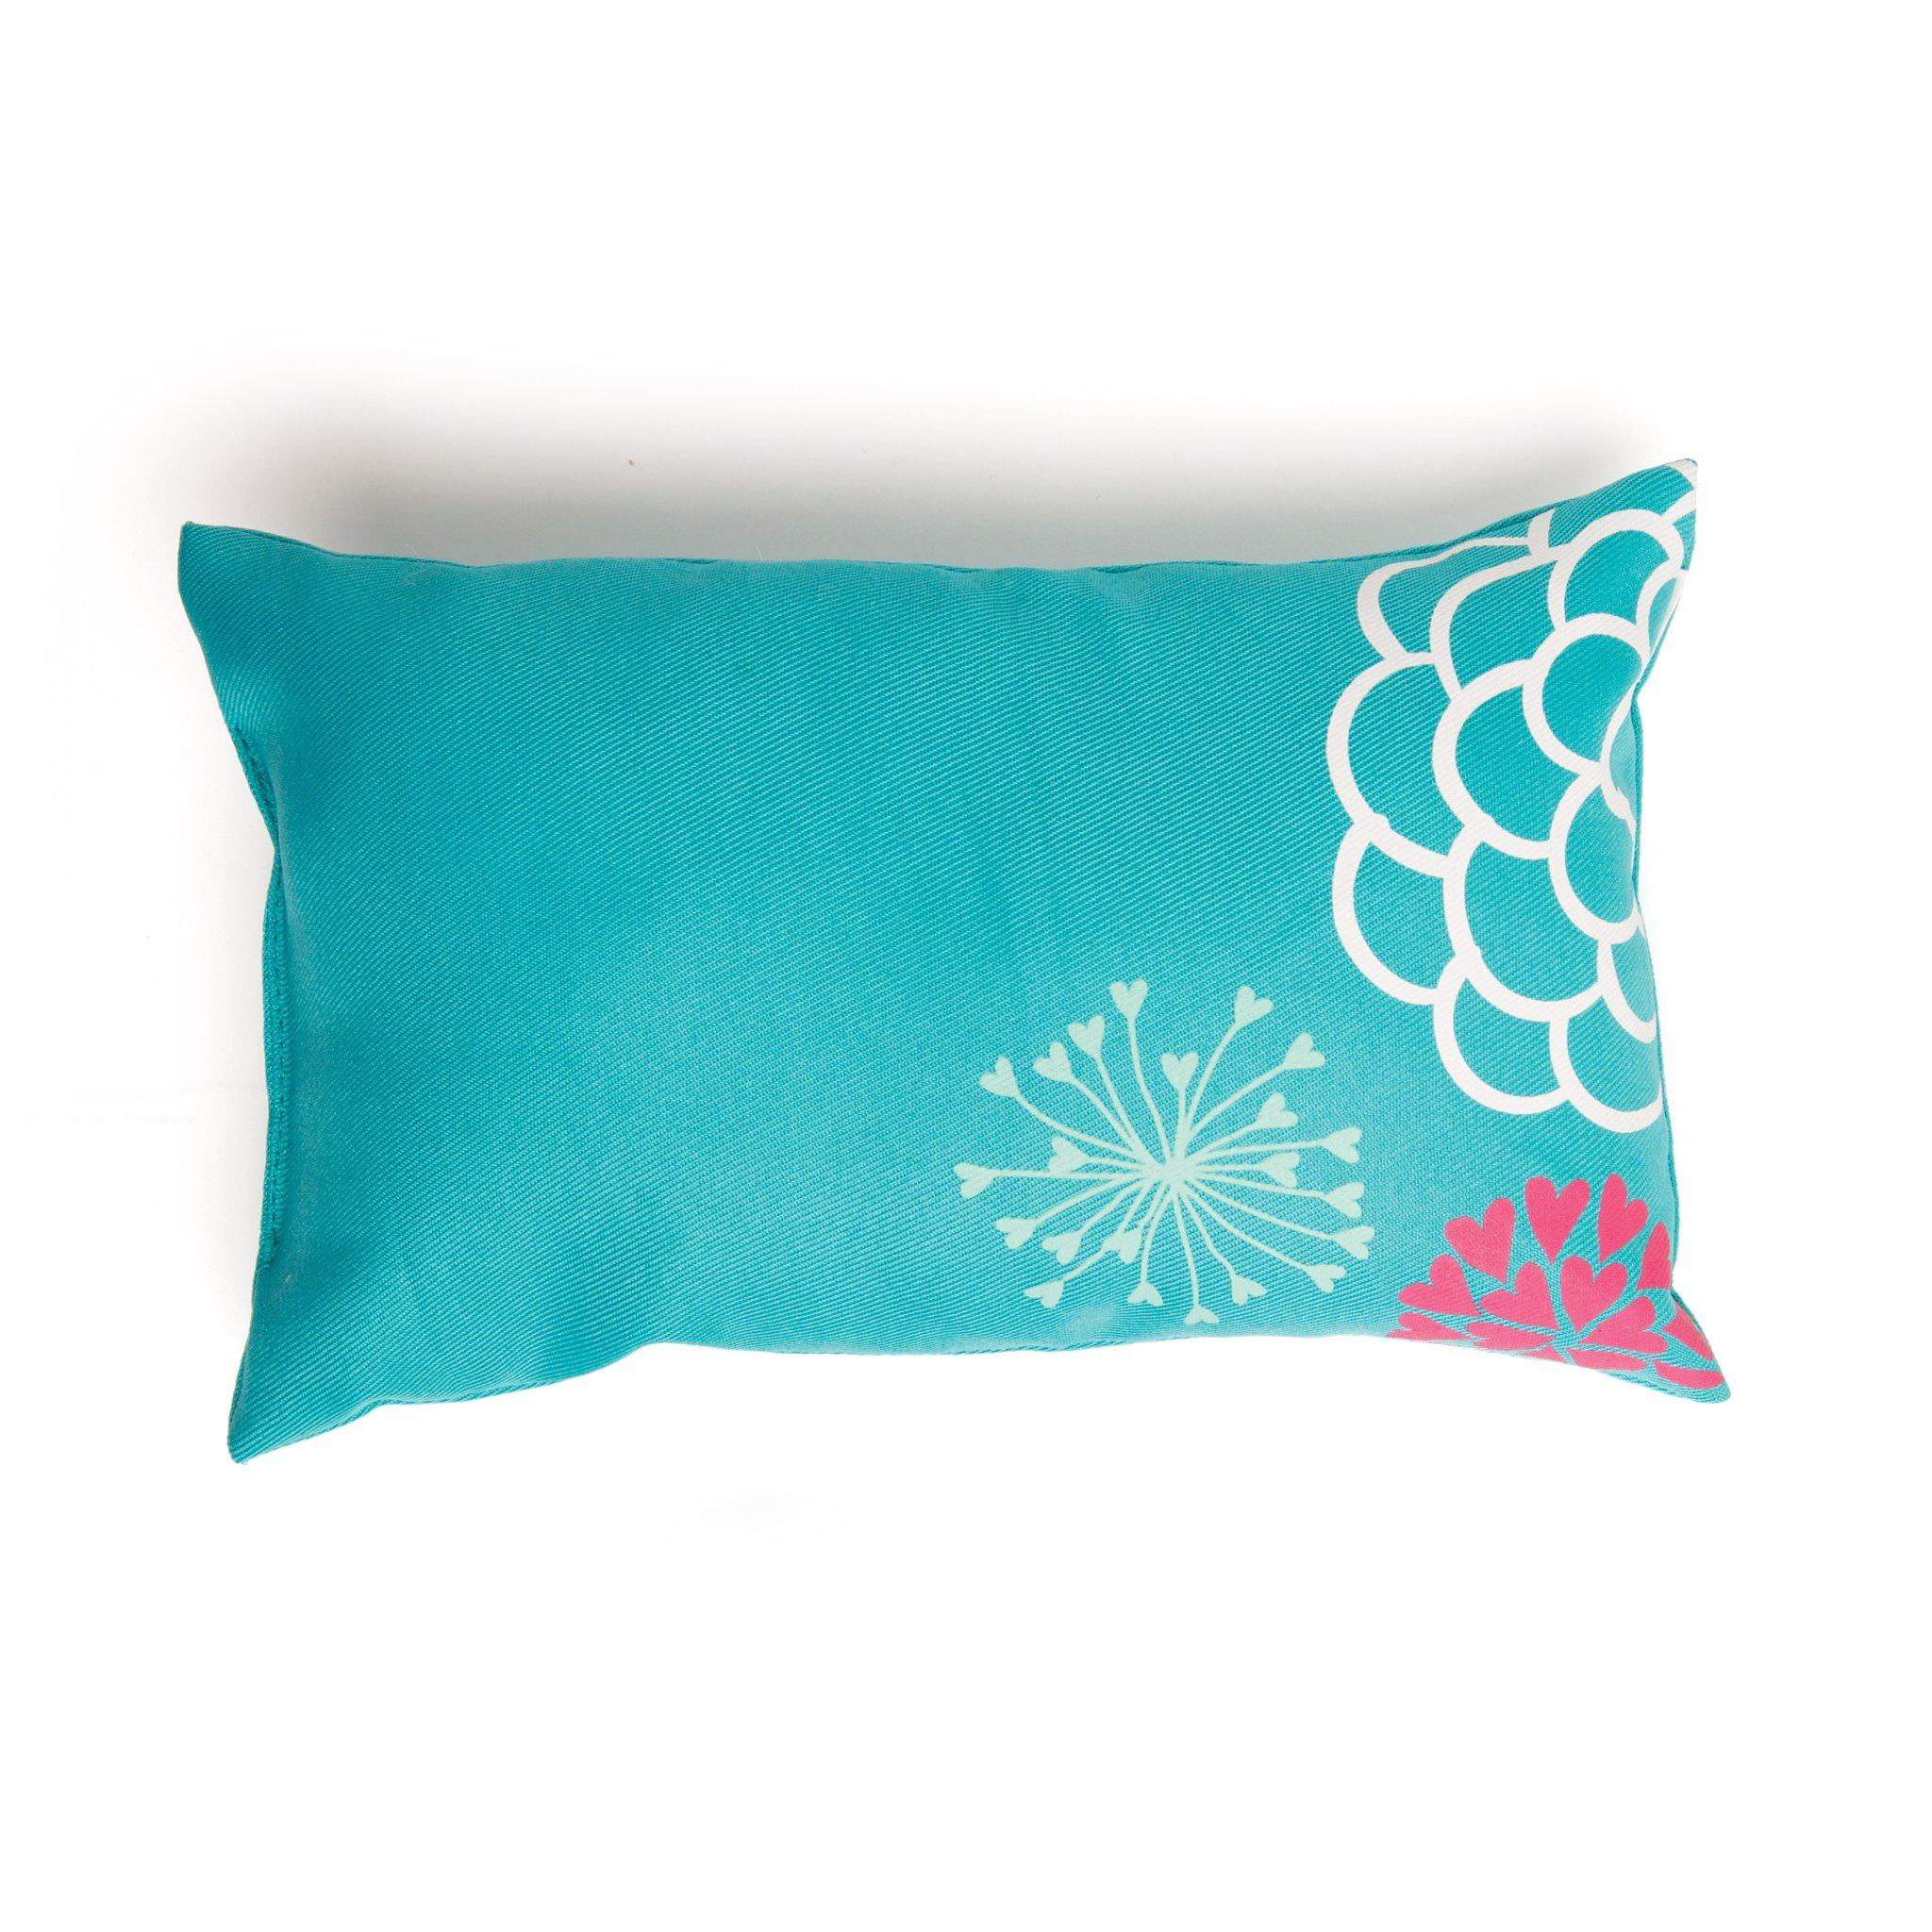 Field of flowers teal pillow with floral placement for all 18 inch dolls.